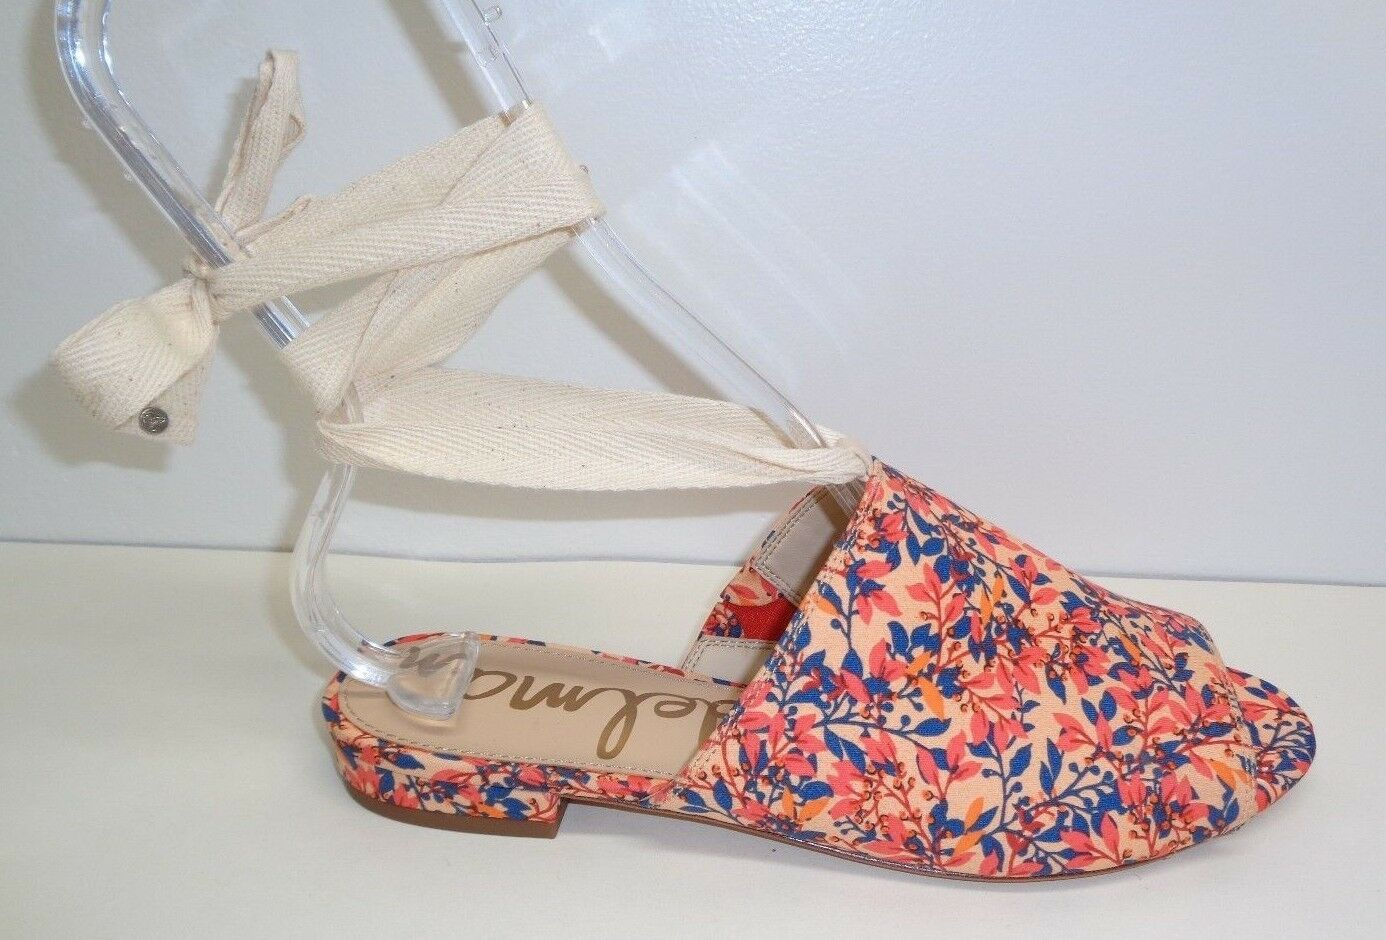 Sam Edelman Taille 8.5 M TAI Coral Fabric Ankle Wrap Sandals New femmes chaussures